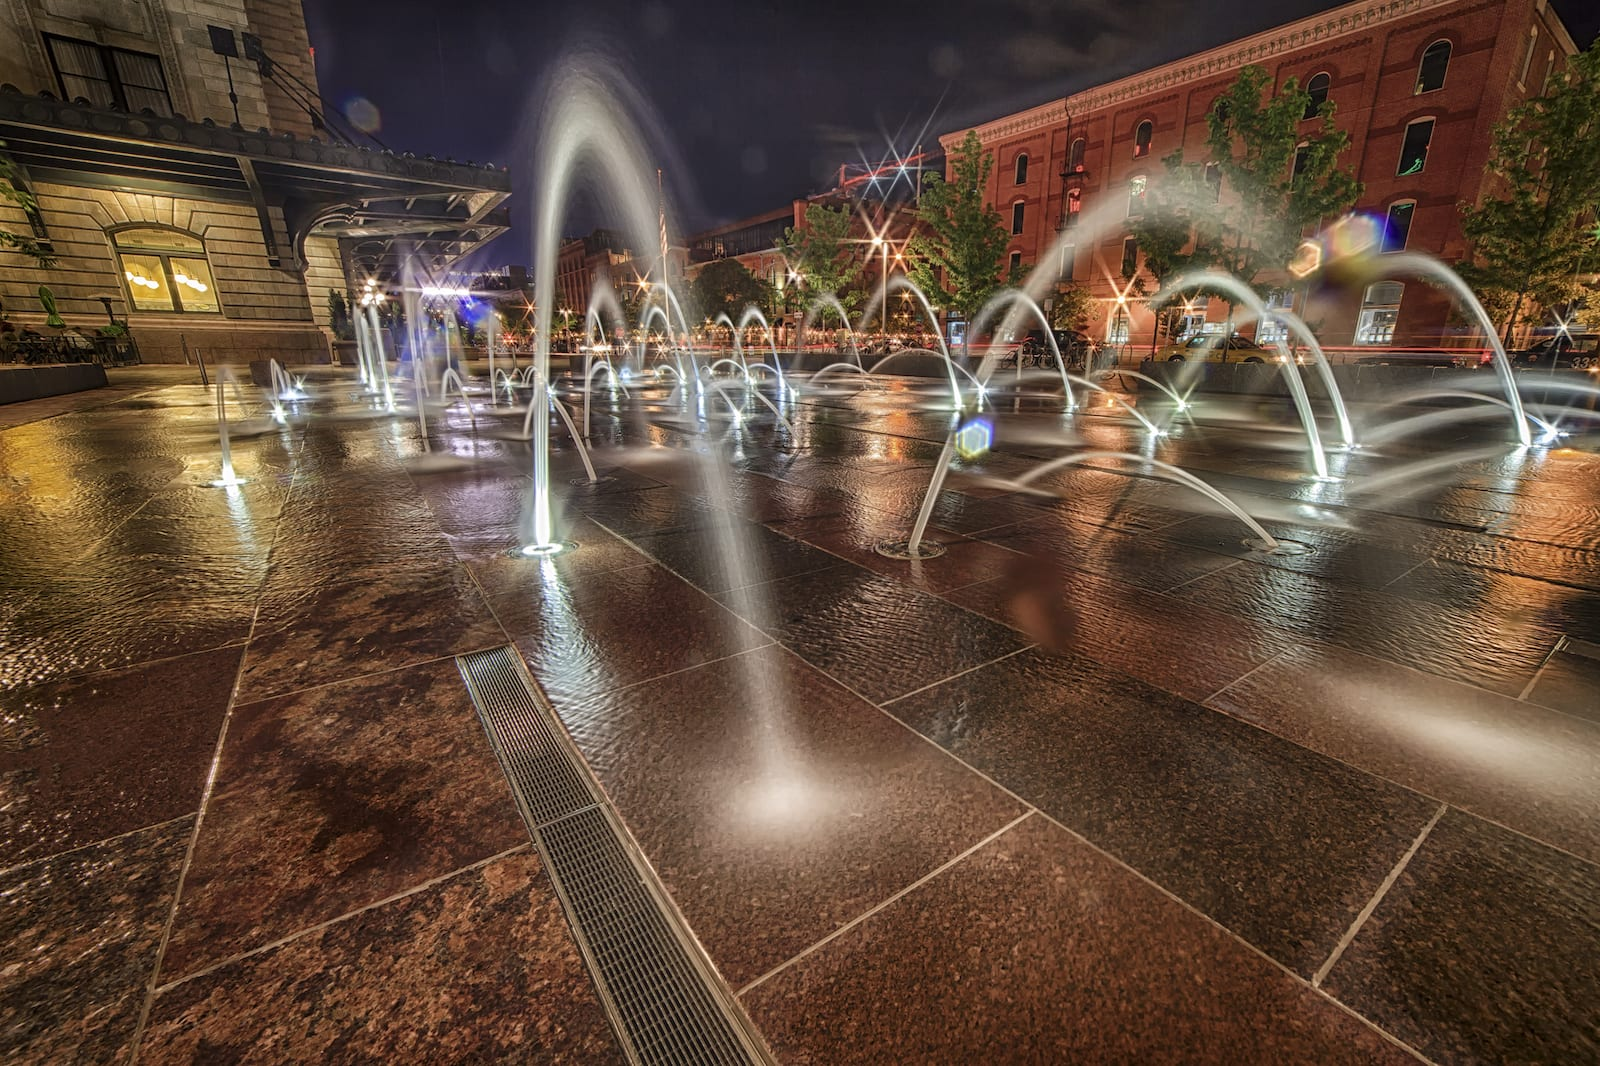 Denver Union Station Fountains Night